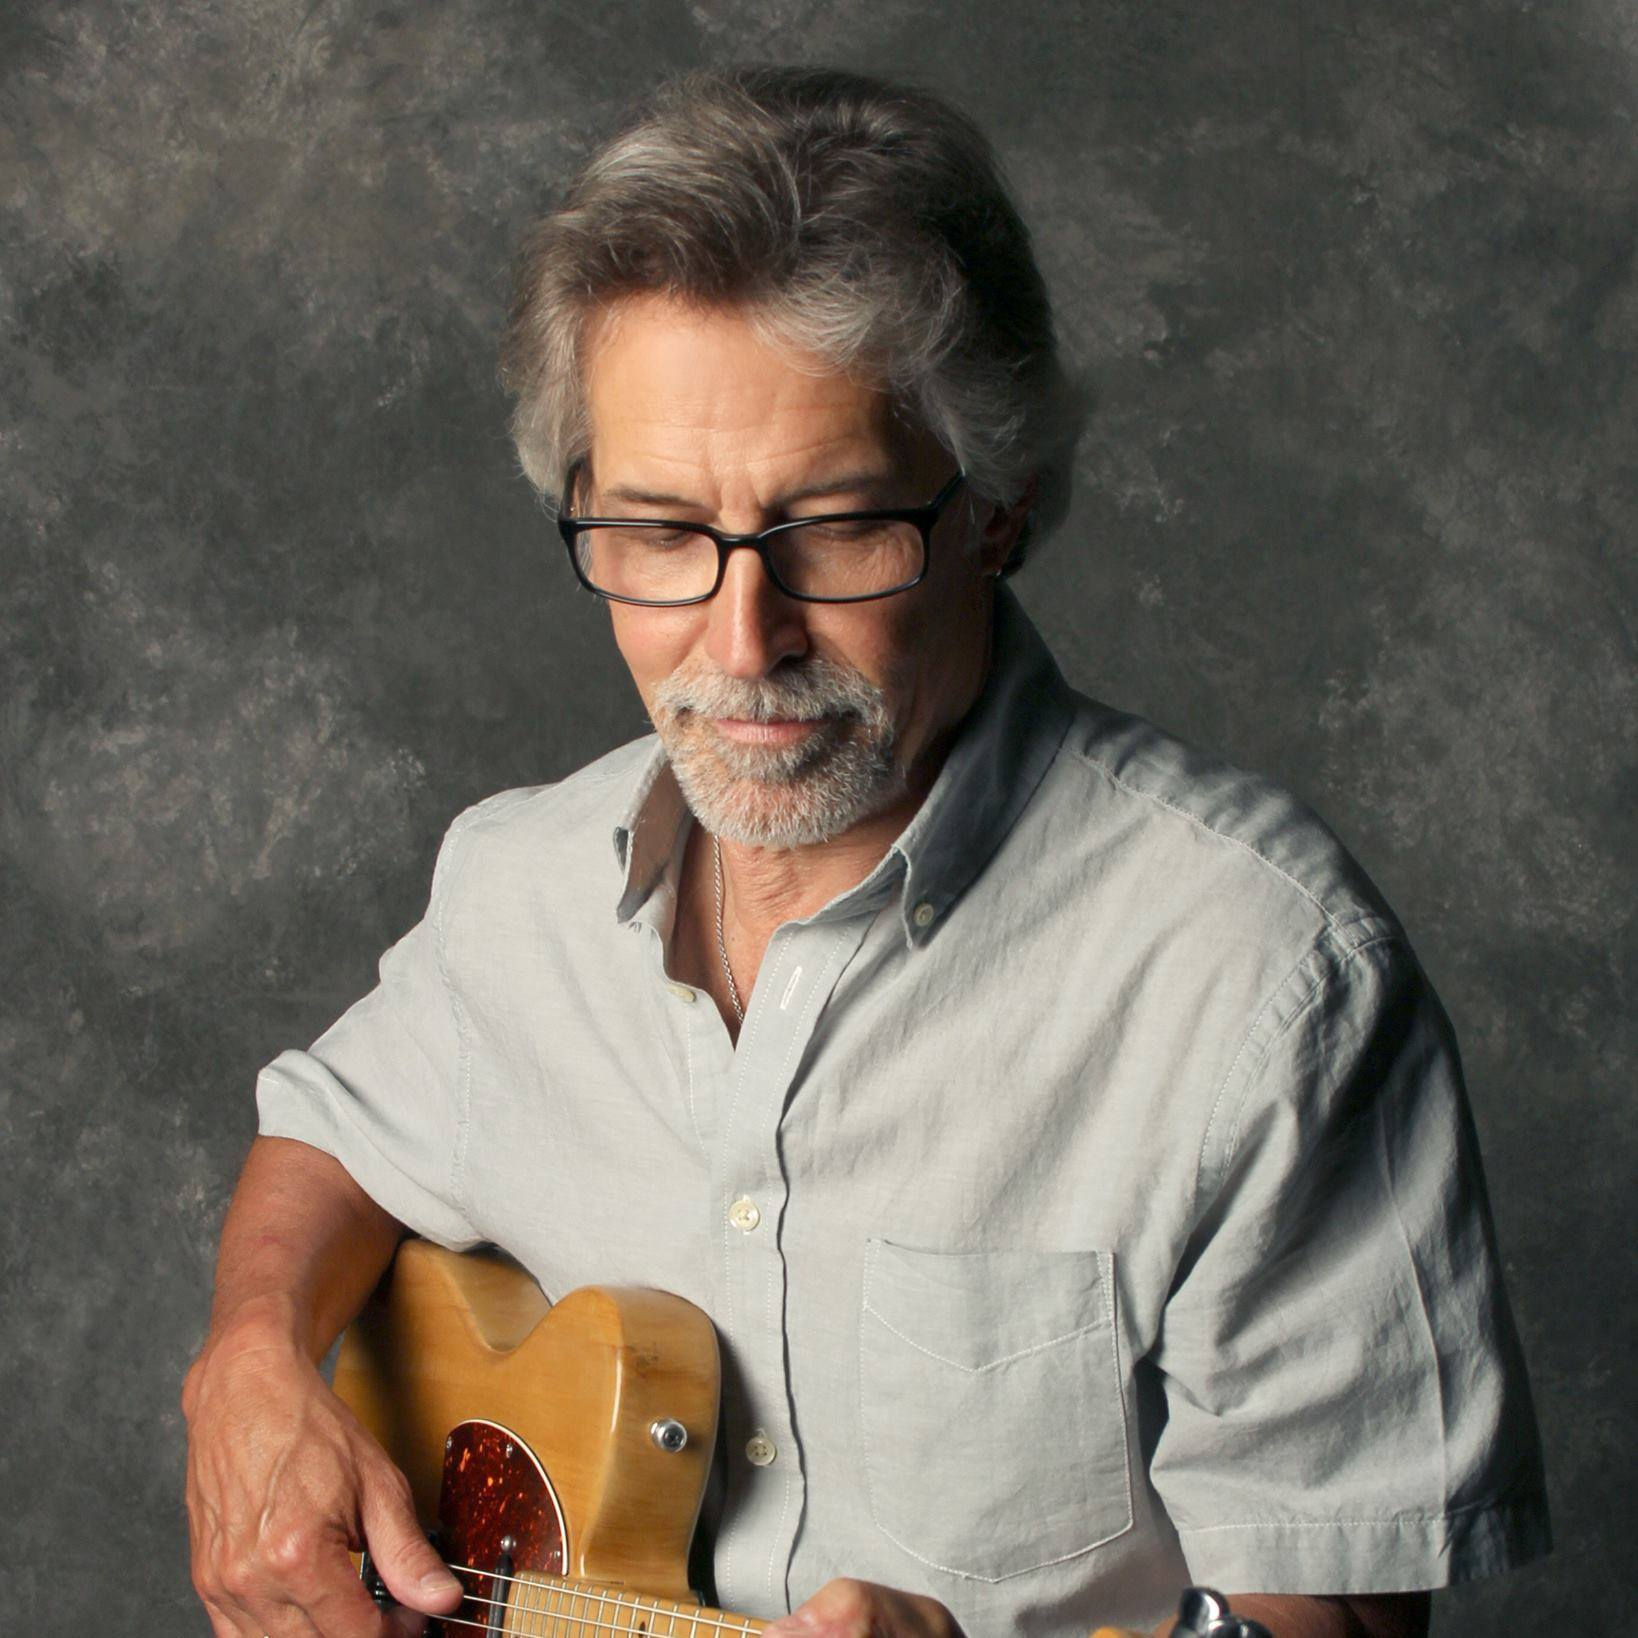 Darrell Data ~ Saturday September 16th ~ Second Stage at Uptown Grill ~A Seattle guitarist/vocalist with a diverse following, and a play list ranging from the 40's to Current Blues, Rock, Jazz, and Country.